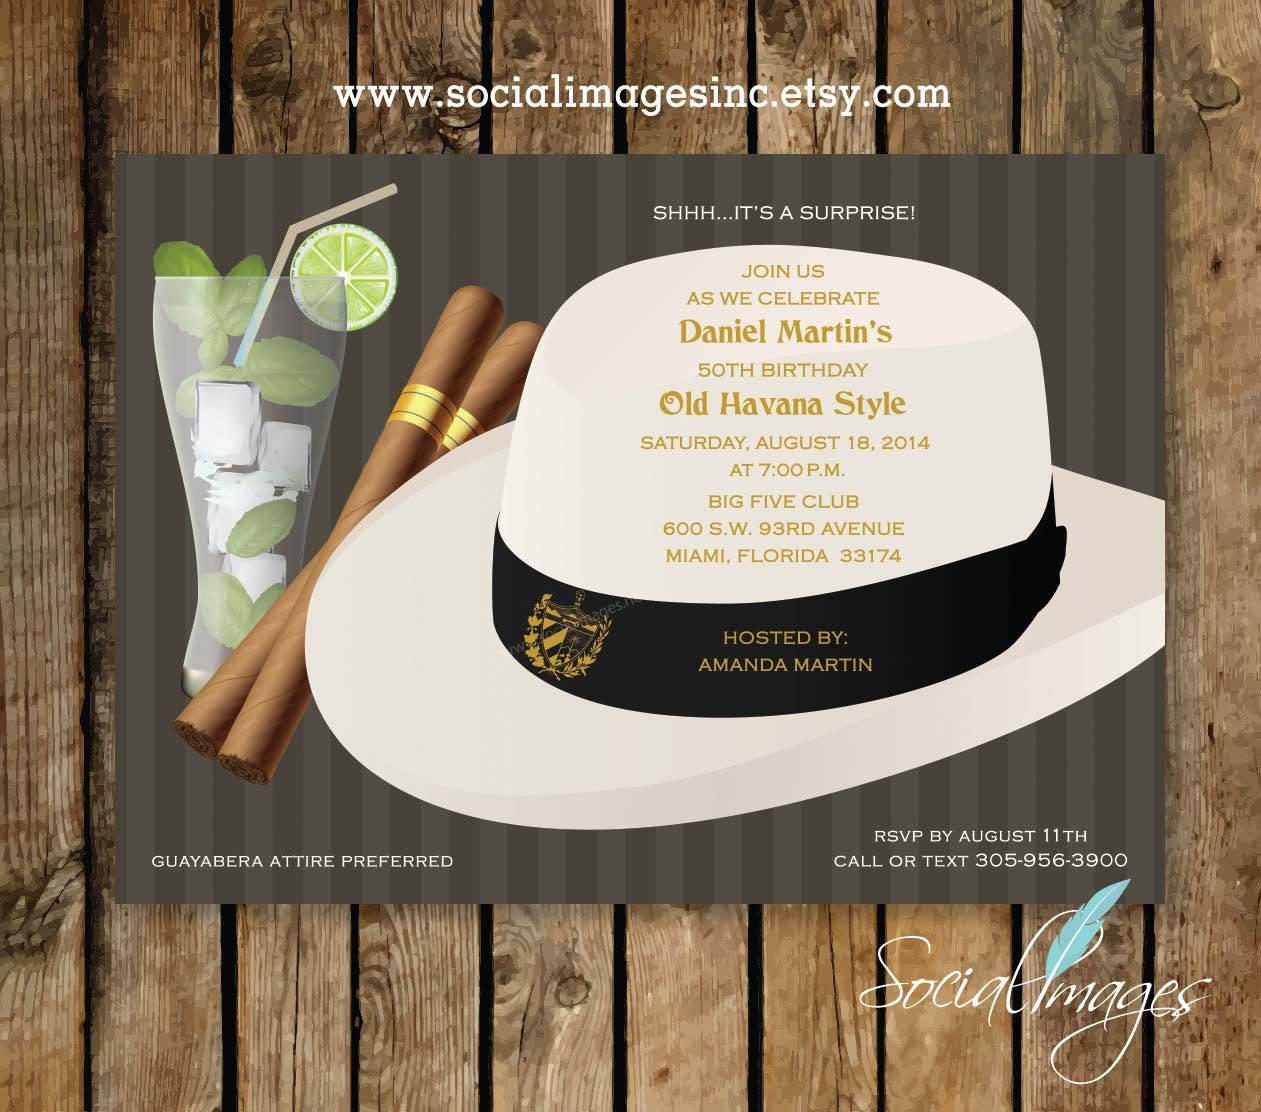 HAVANA NIGHTS Party Invitation Qty 25100 Pricing includes